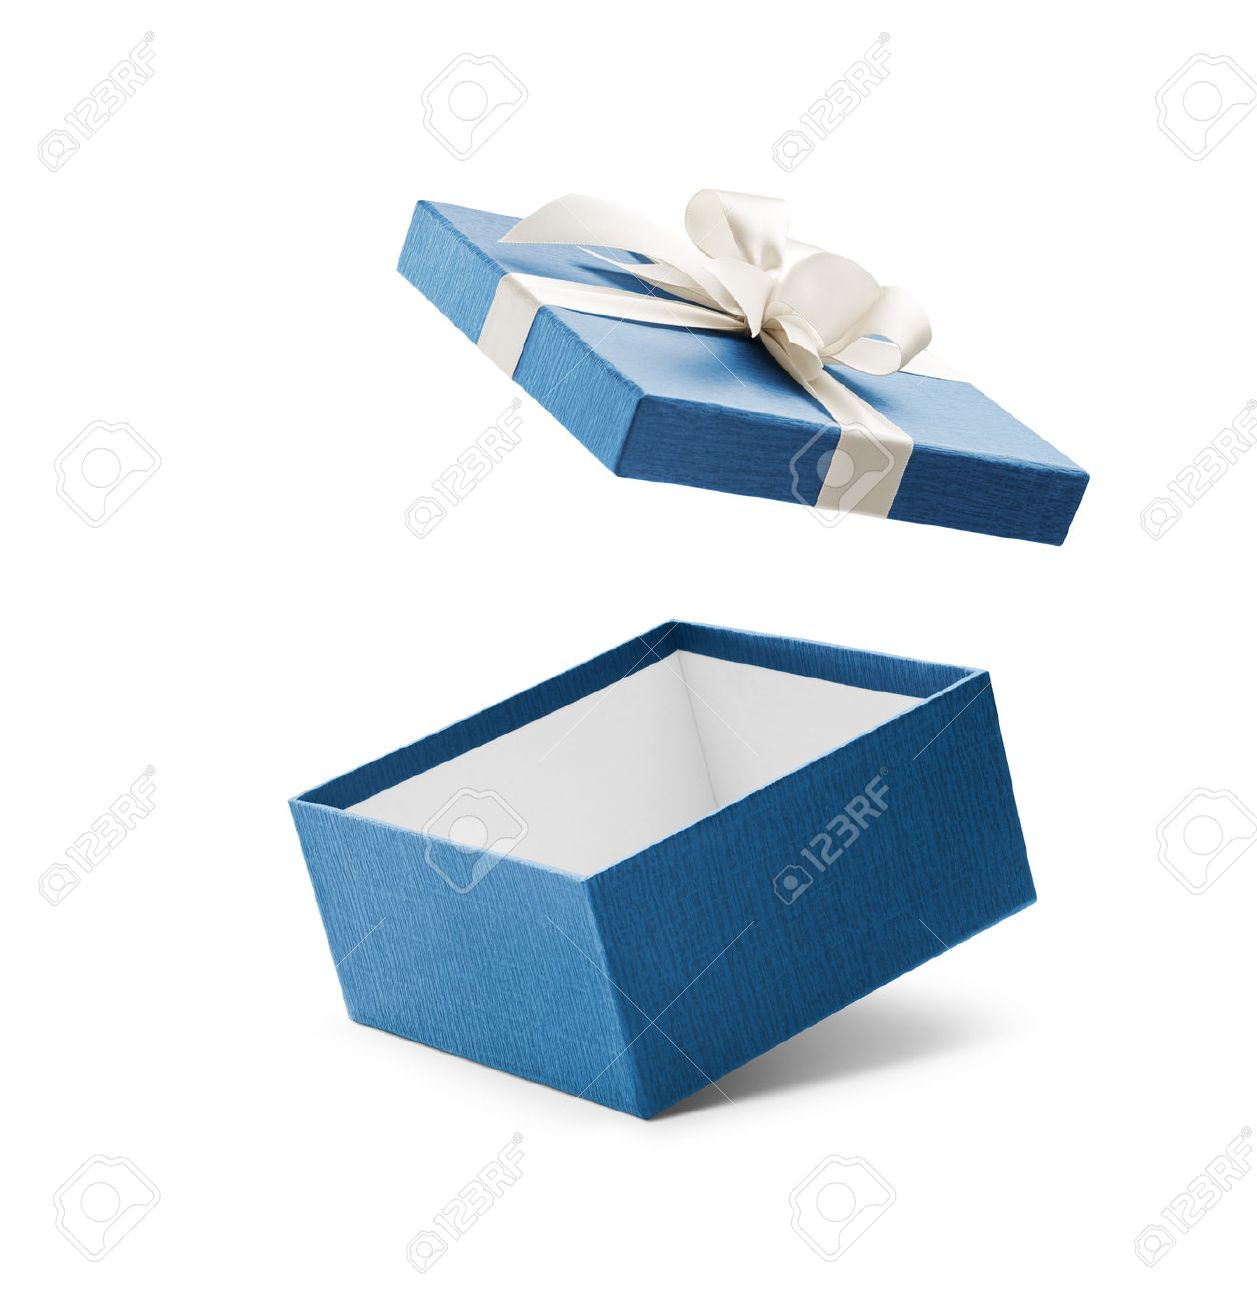 Gift Box Blue Open Gift Box With White Bow Isolated On White